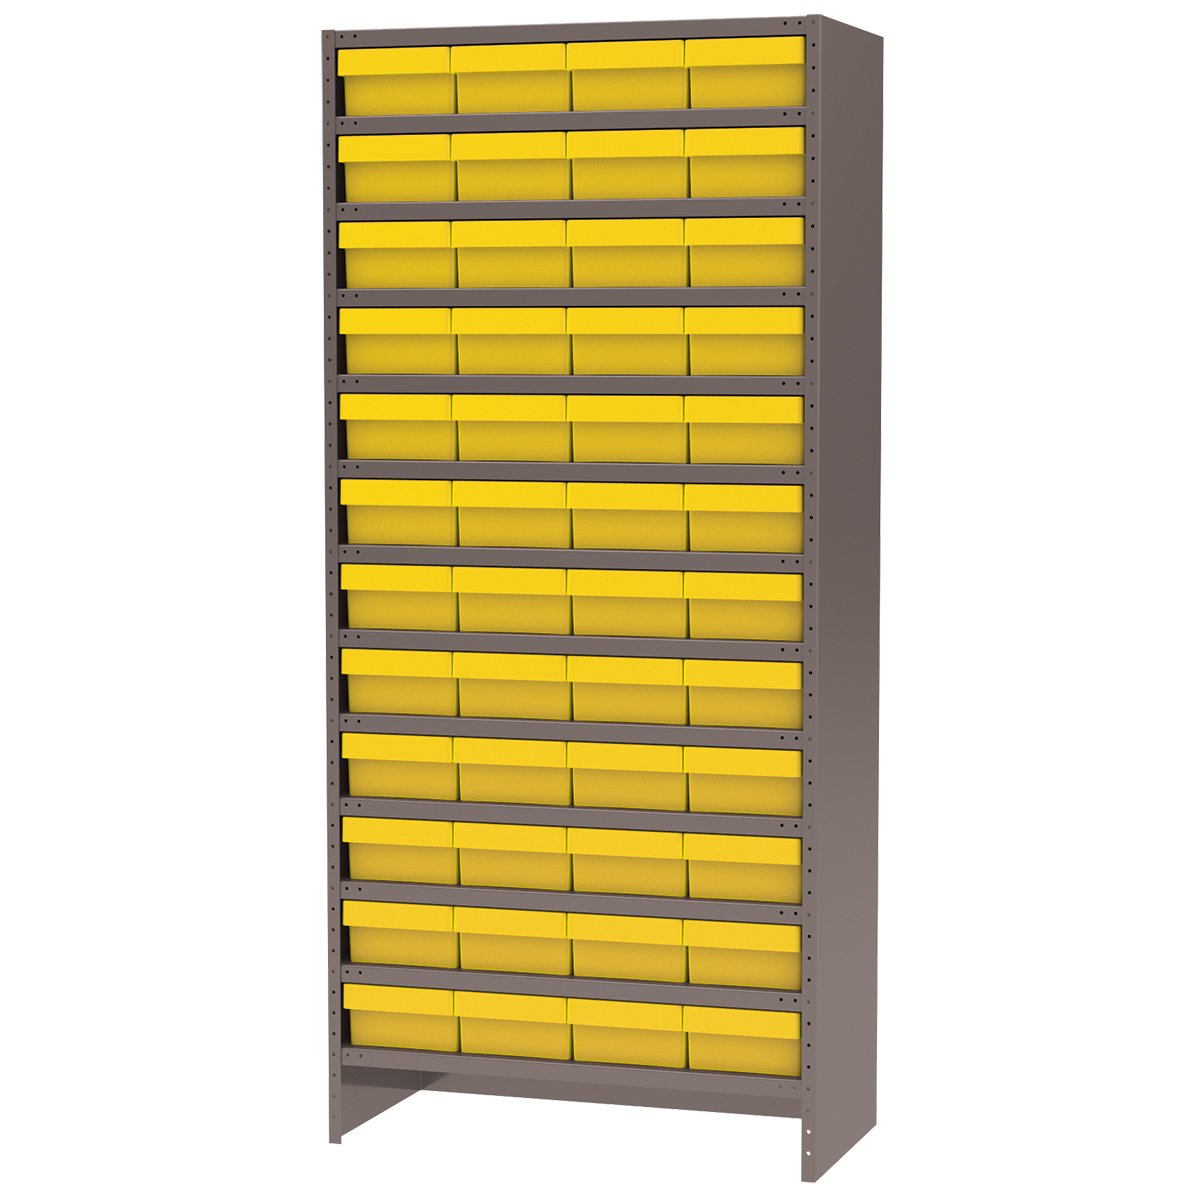 Enclosed Steel Shelving Kit, 18x36x79, 48 AkroDrawers, Gray/Yellow.  This item sold in carton quantities of 1.